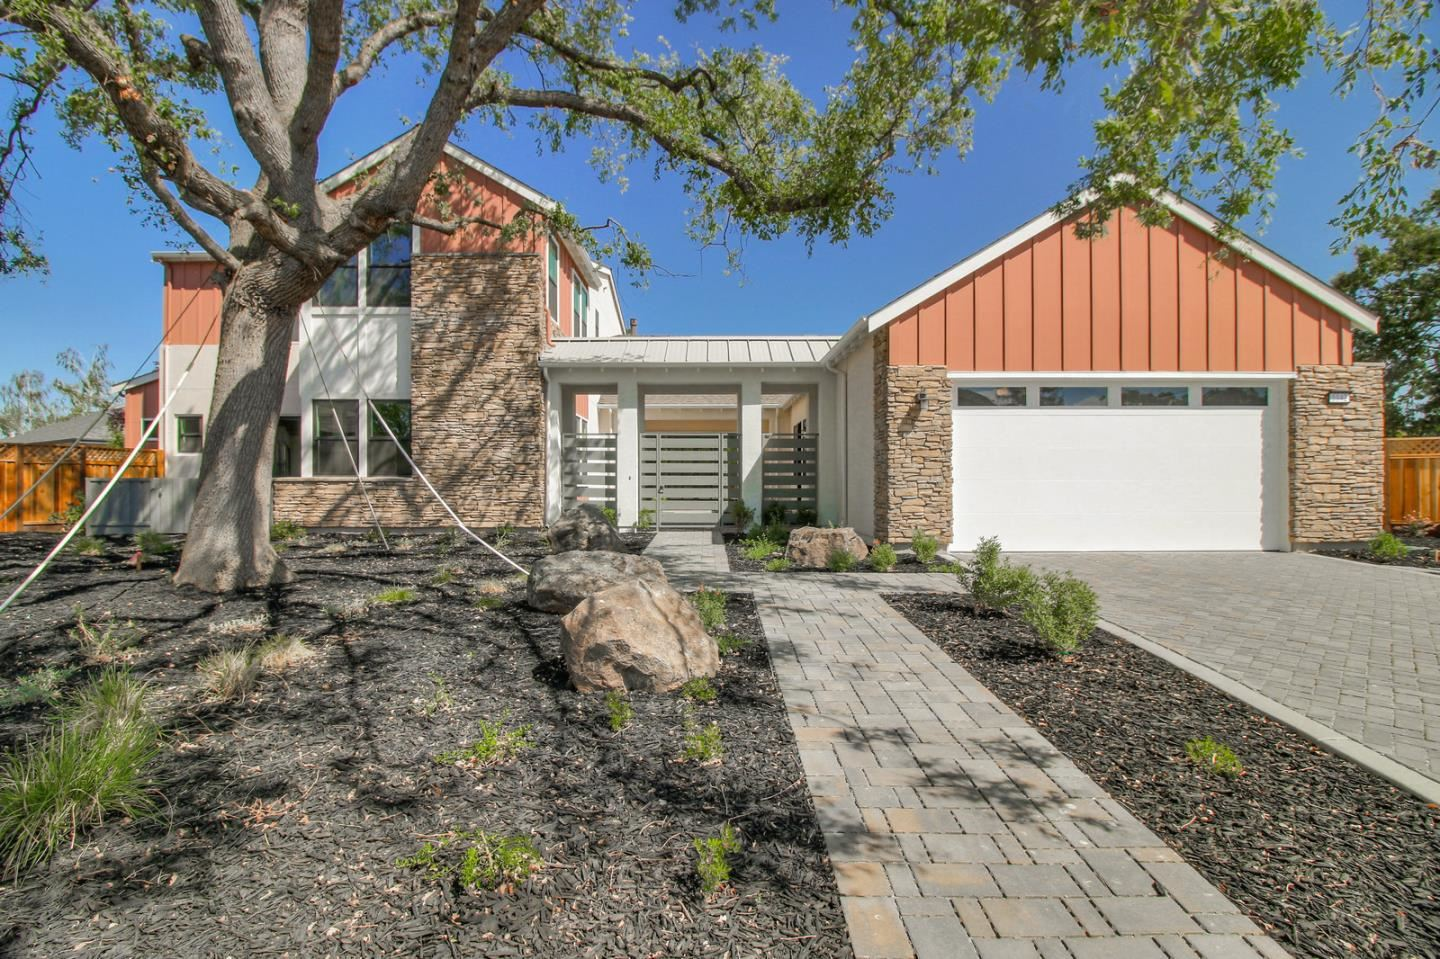 Photo for 1142 Meadows CT, CAMPBELL, CA 95008 (MLS # ML81764094)